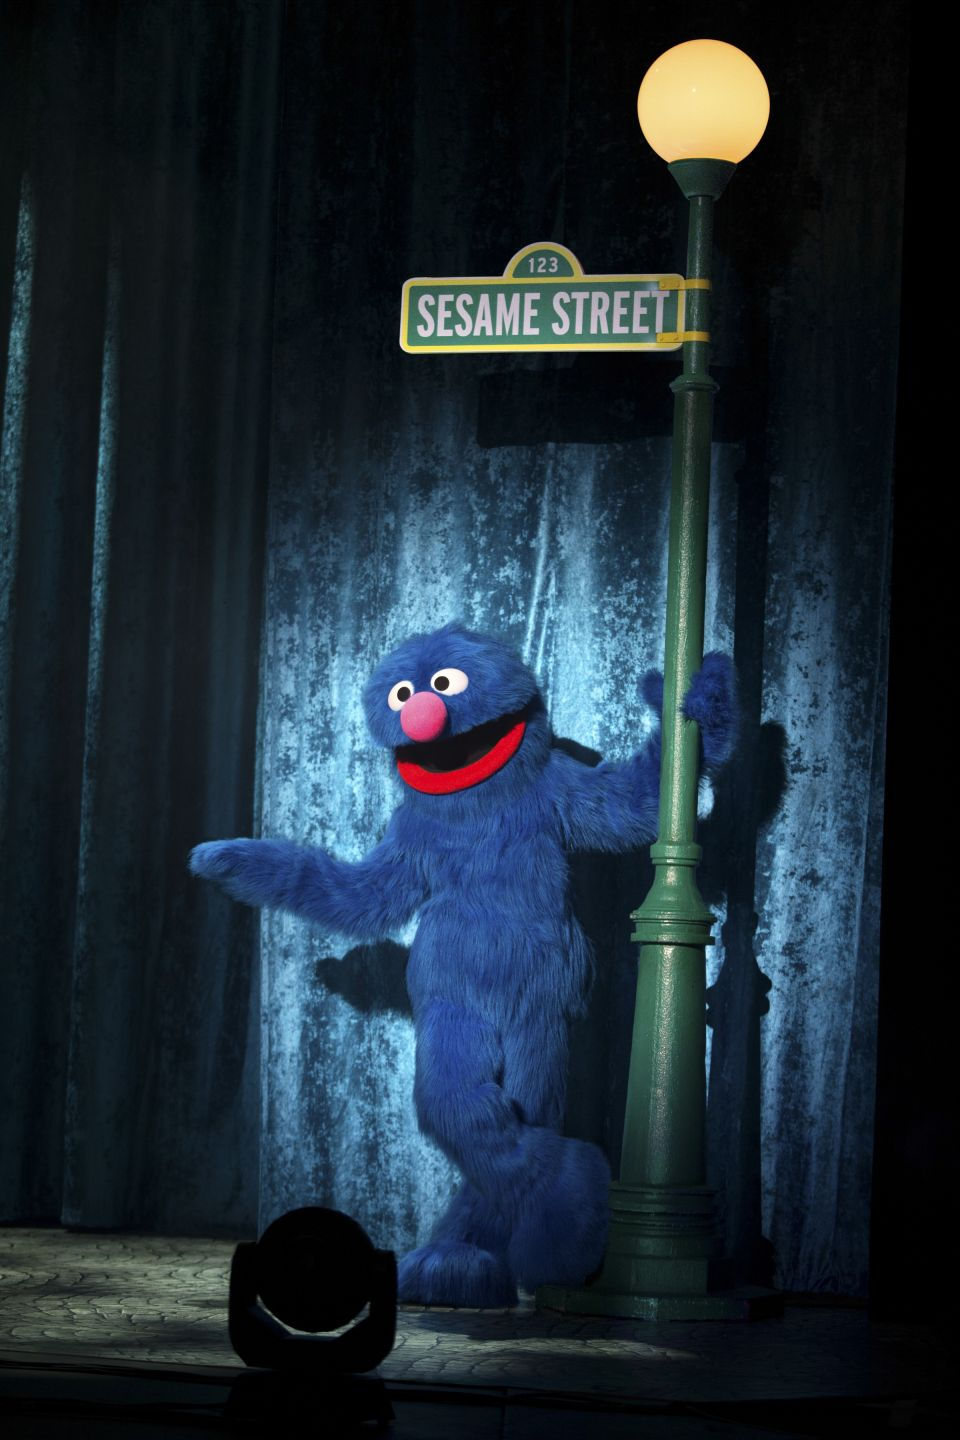 Grover standing under a street lamp